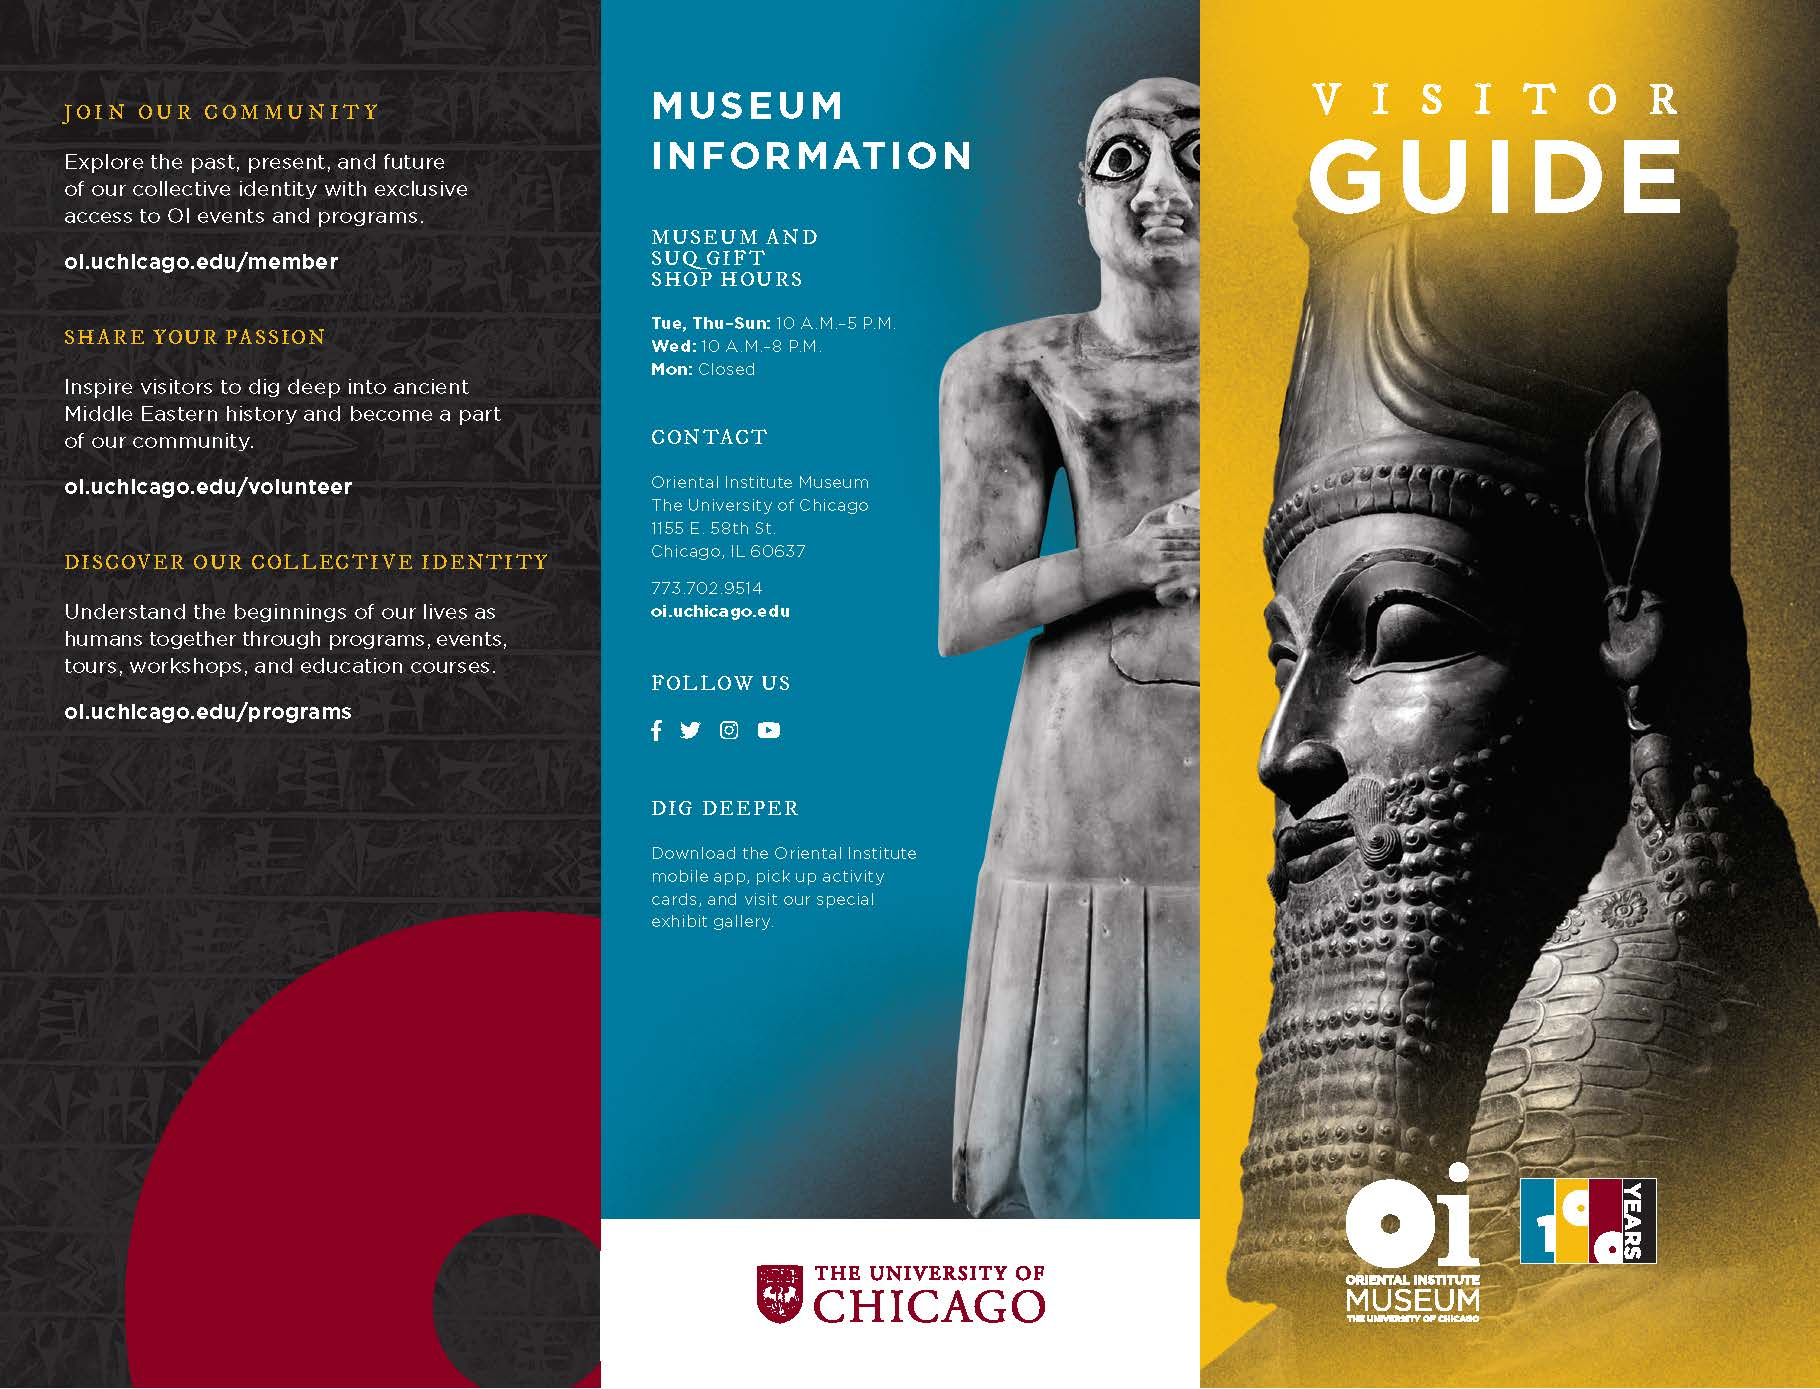 OI_Museum_Visitors Guide_Page_1.jpg